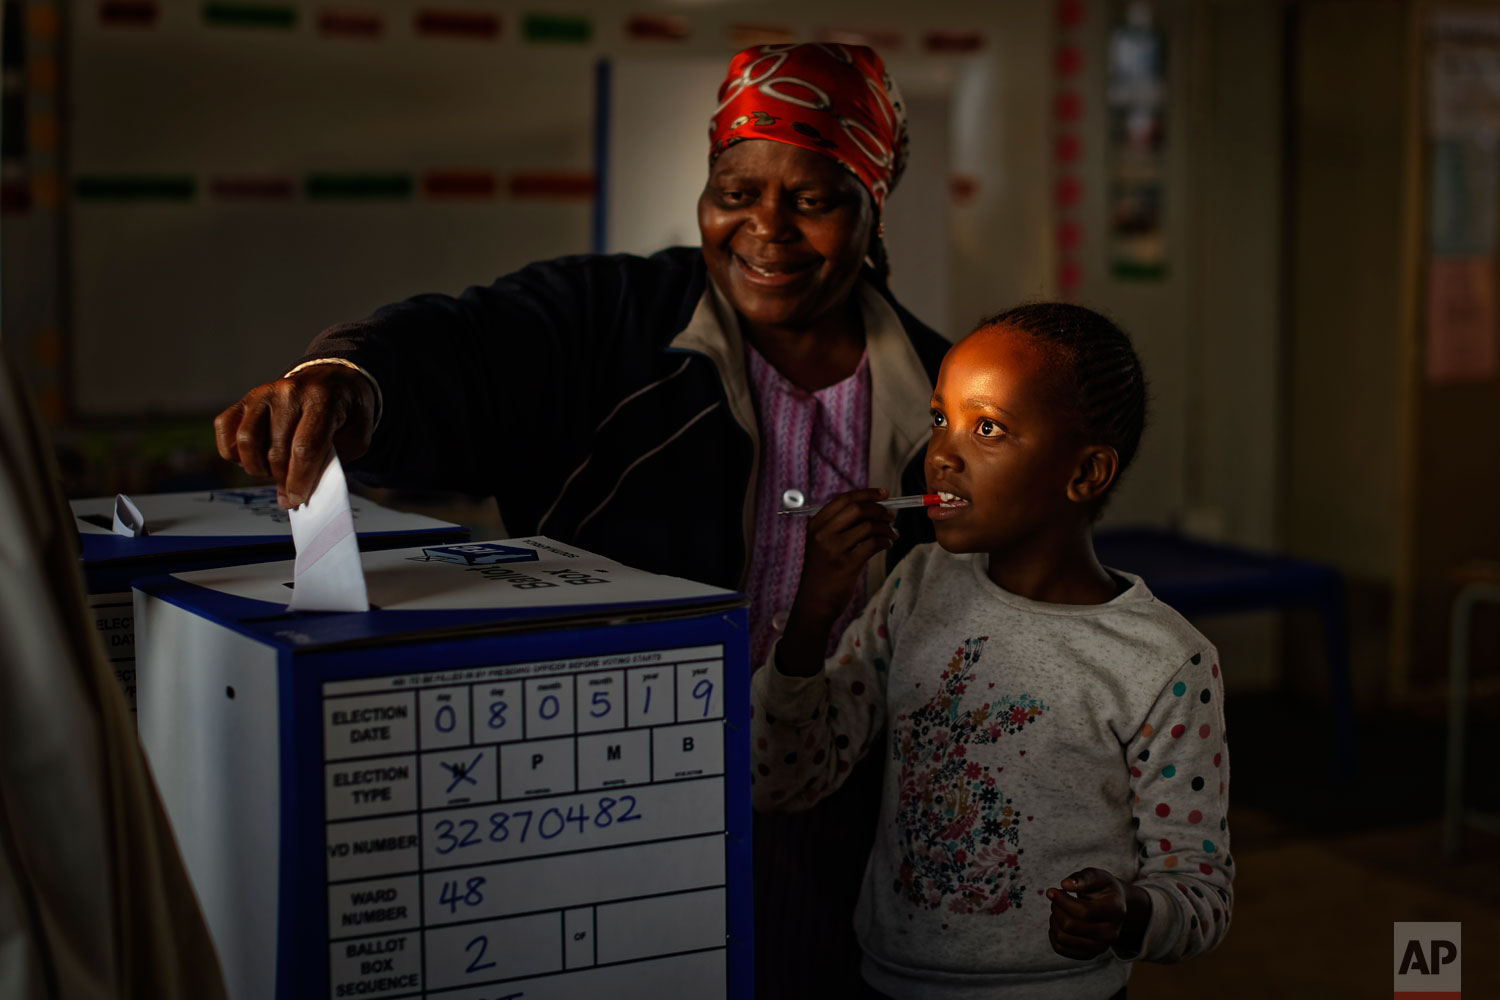 A young girl accompanies a relative as she casts her vote at the end of the day at a polling station in Dobsonville, Johannesburg, South Africa Wednesday, May 8, 2019.  (AP Photo/Ben Curtis)